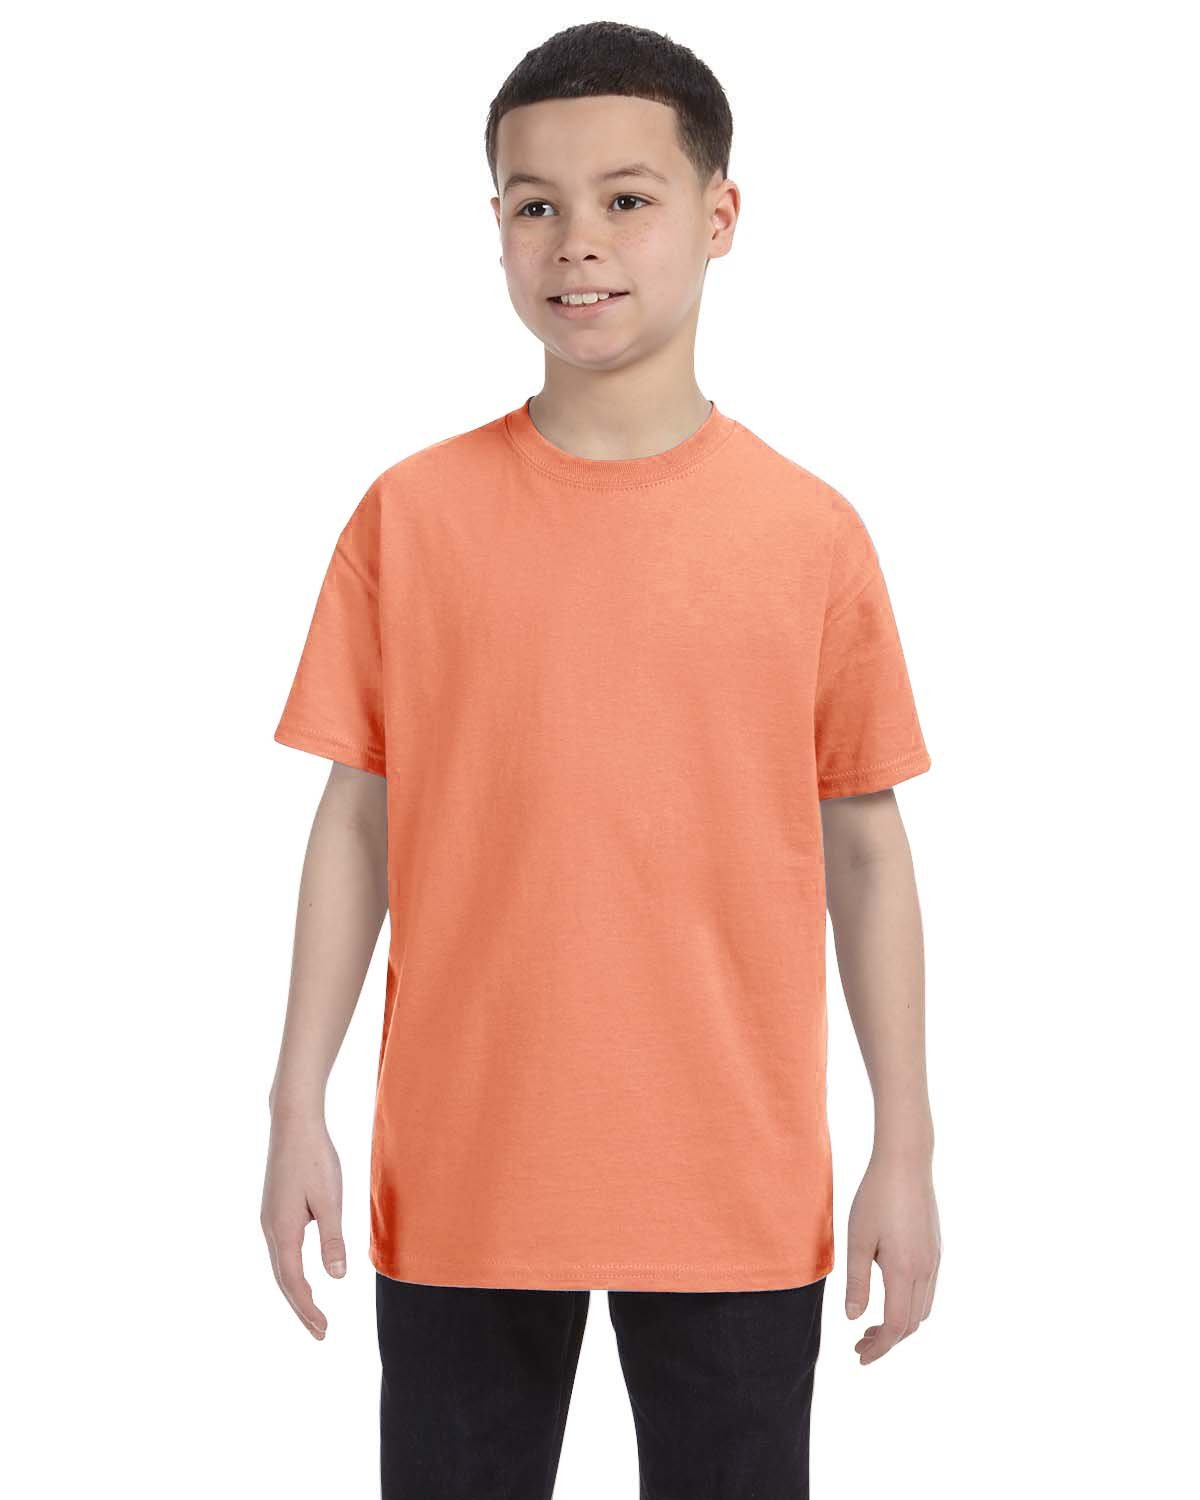 Hanes Youth Authentic-T T-Shirt CANDY ORANGE